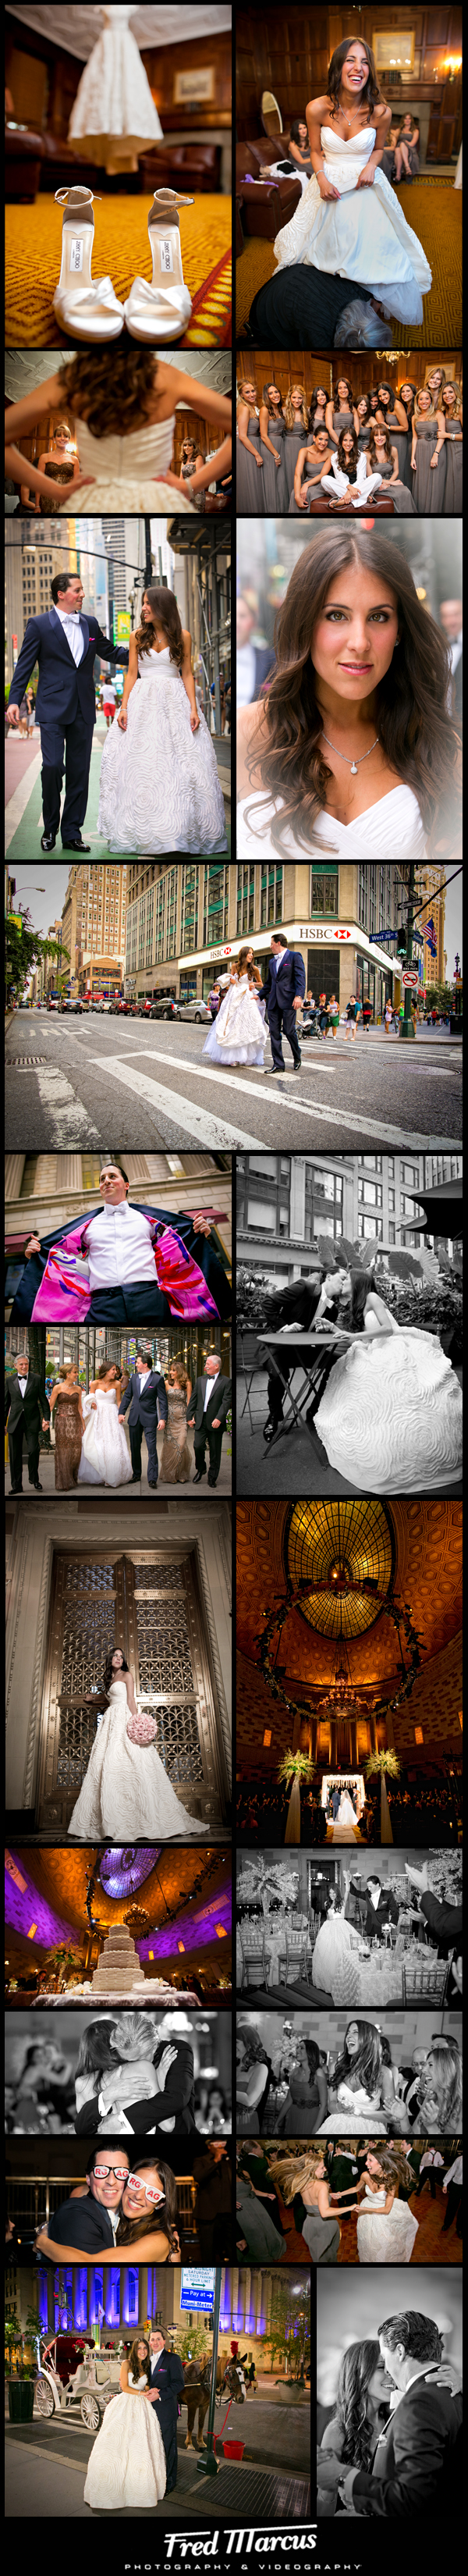 A Gorgeous New York Wedding at Gotham Hall